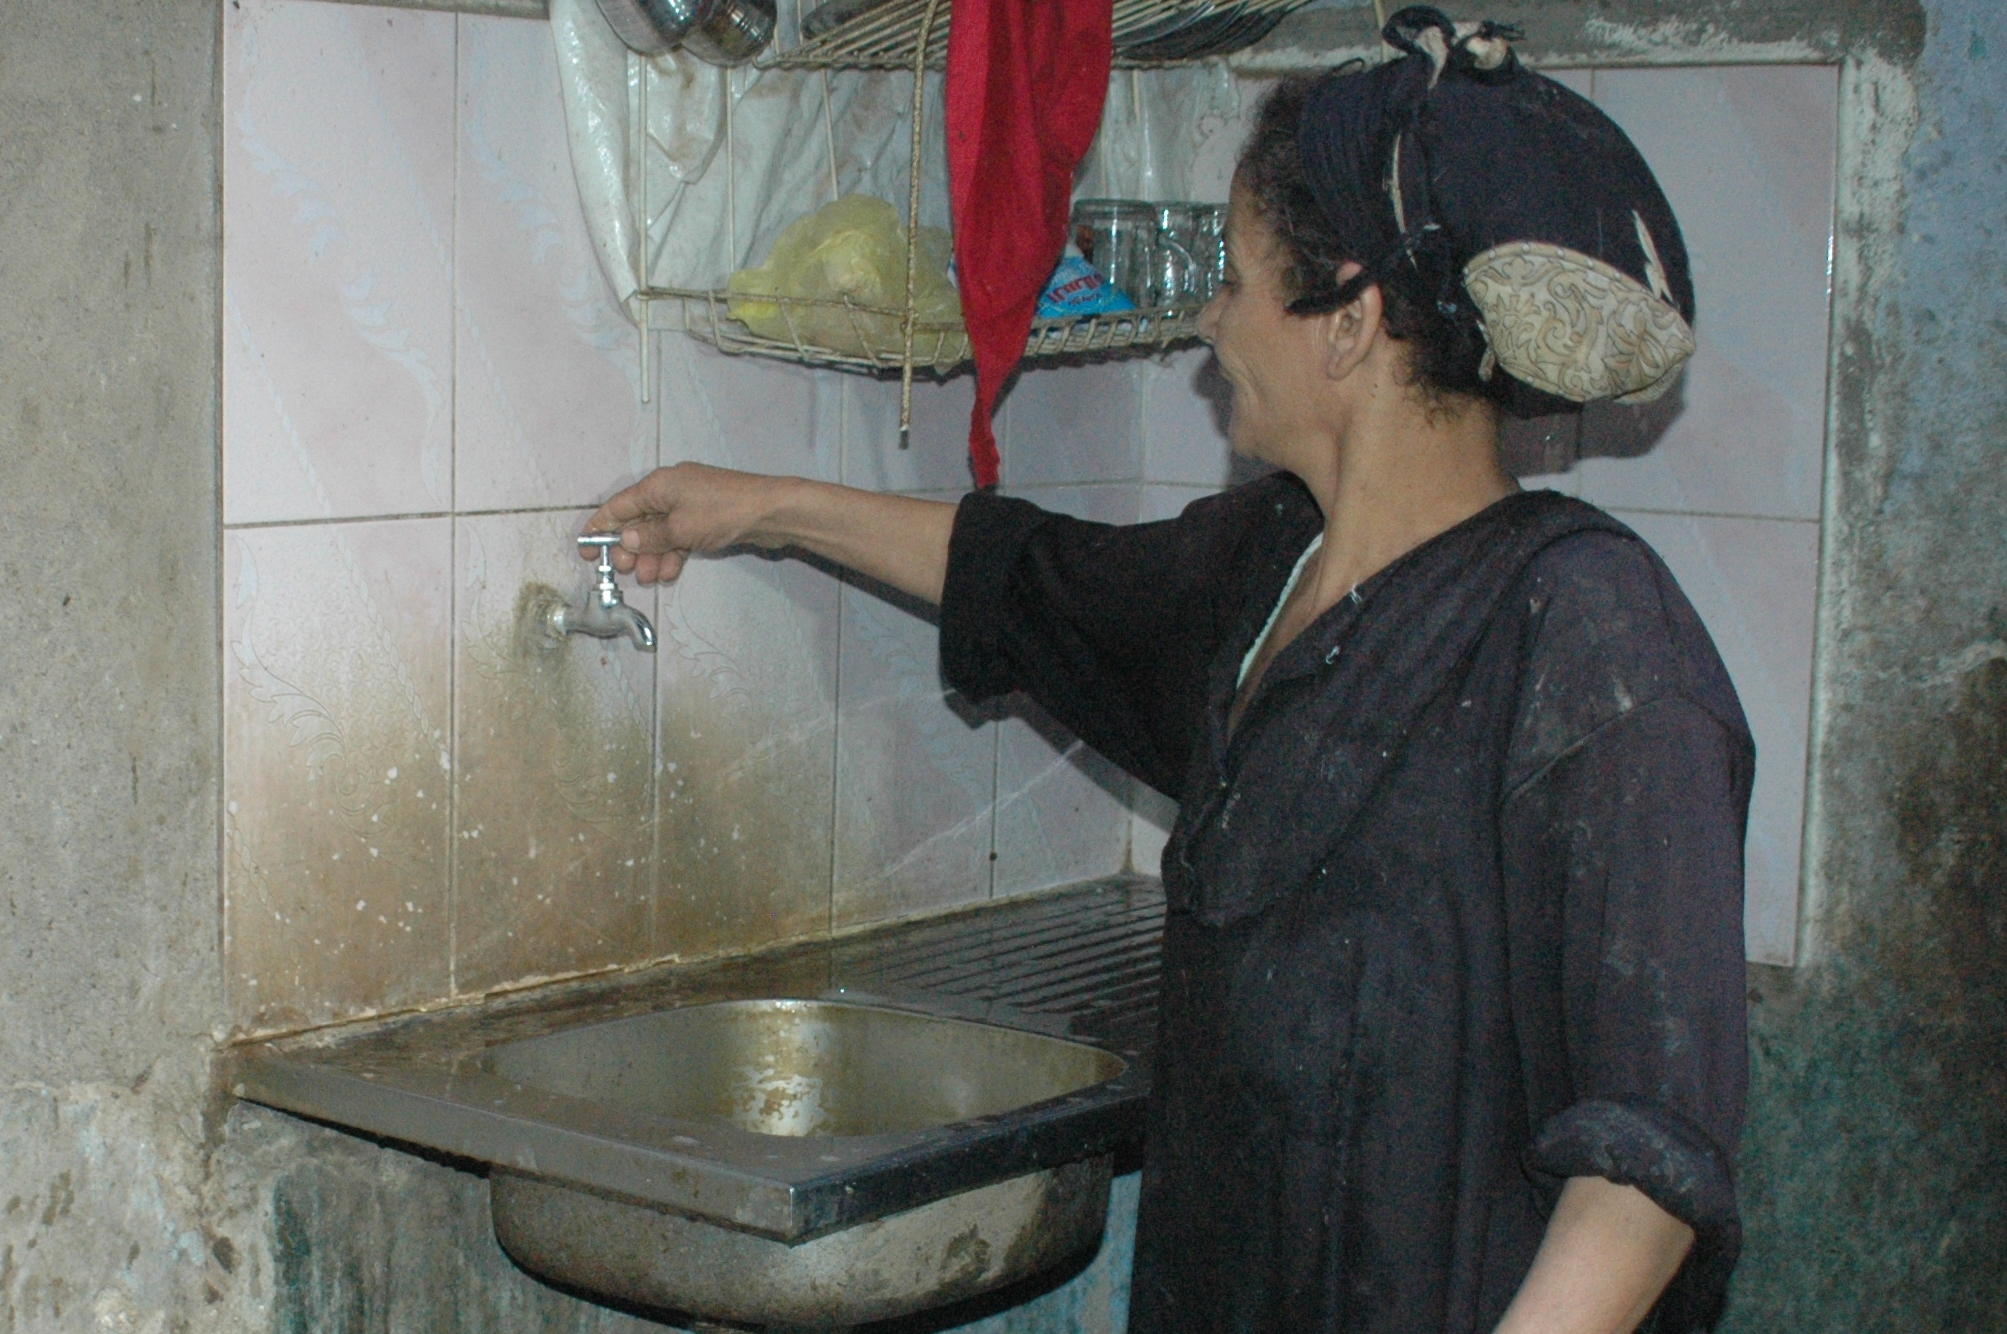 Woman turns on water faucet in her home